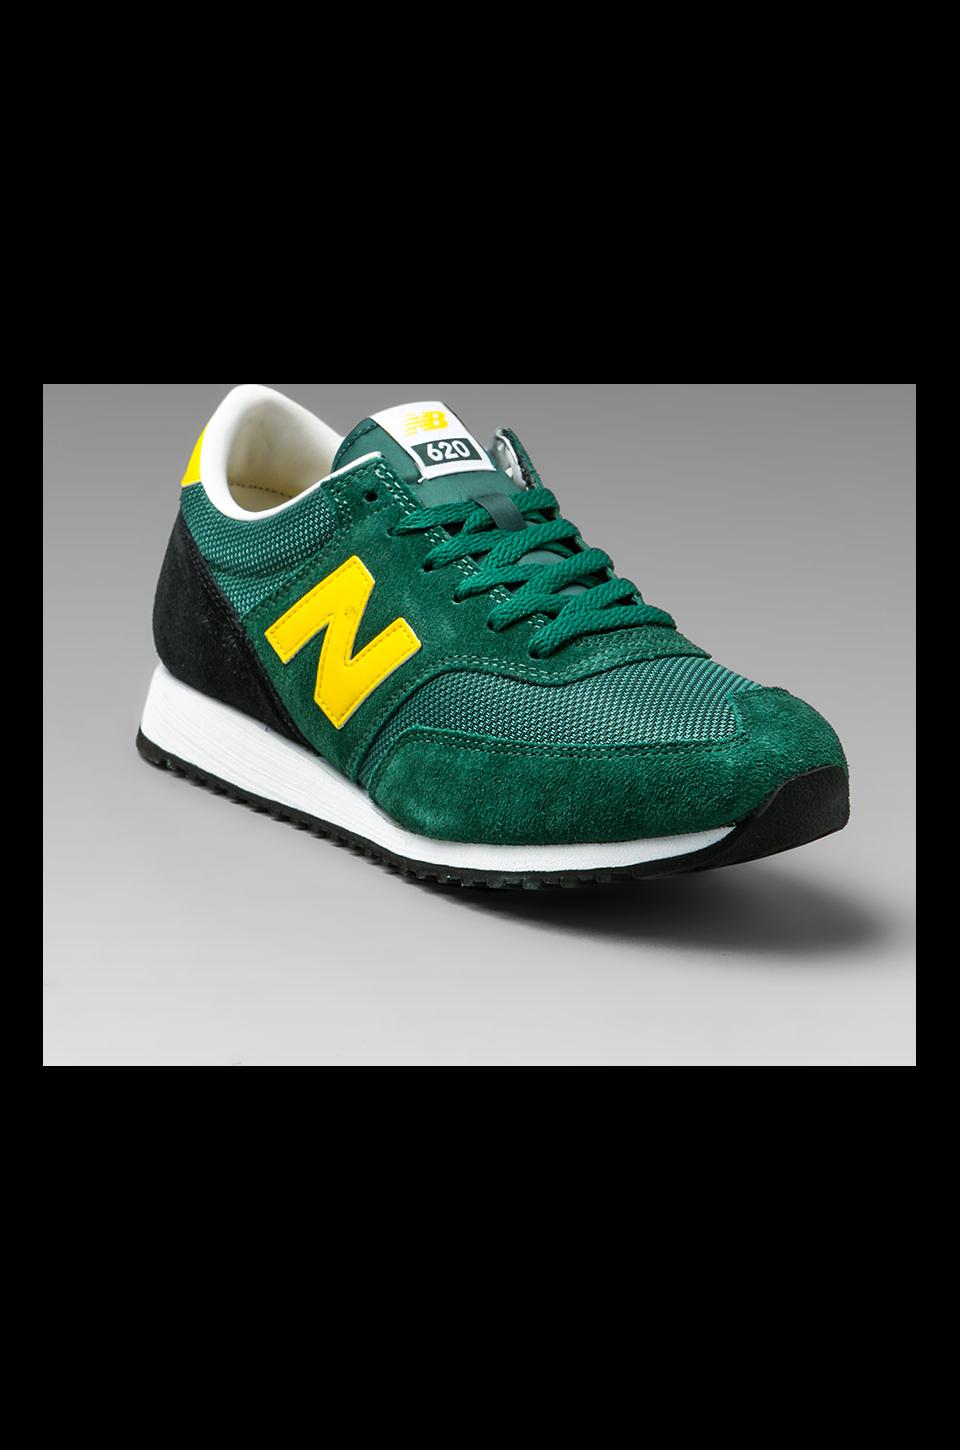 New Balance Classic CM620 Suede/Mesh in Green/Yellow/Black